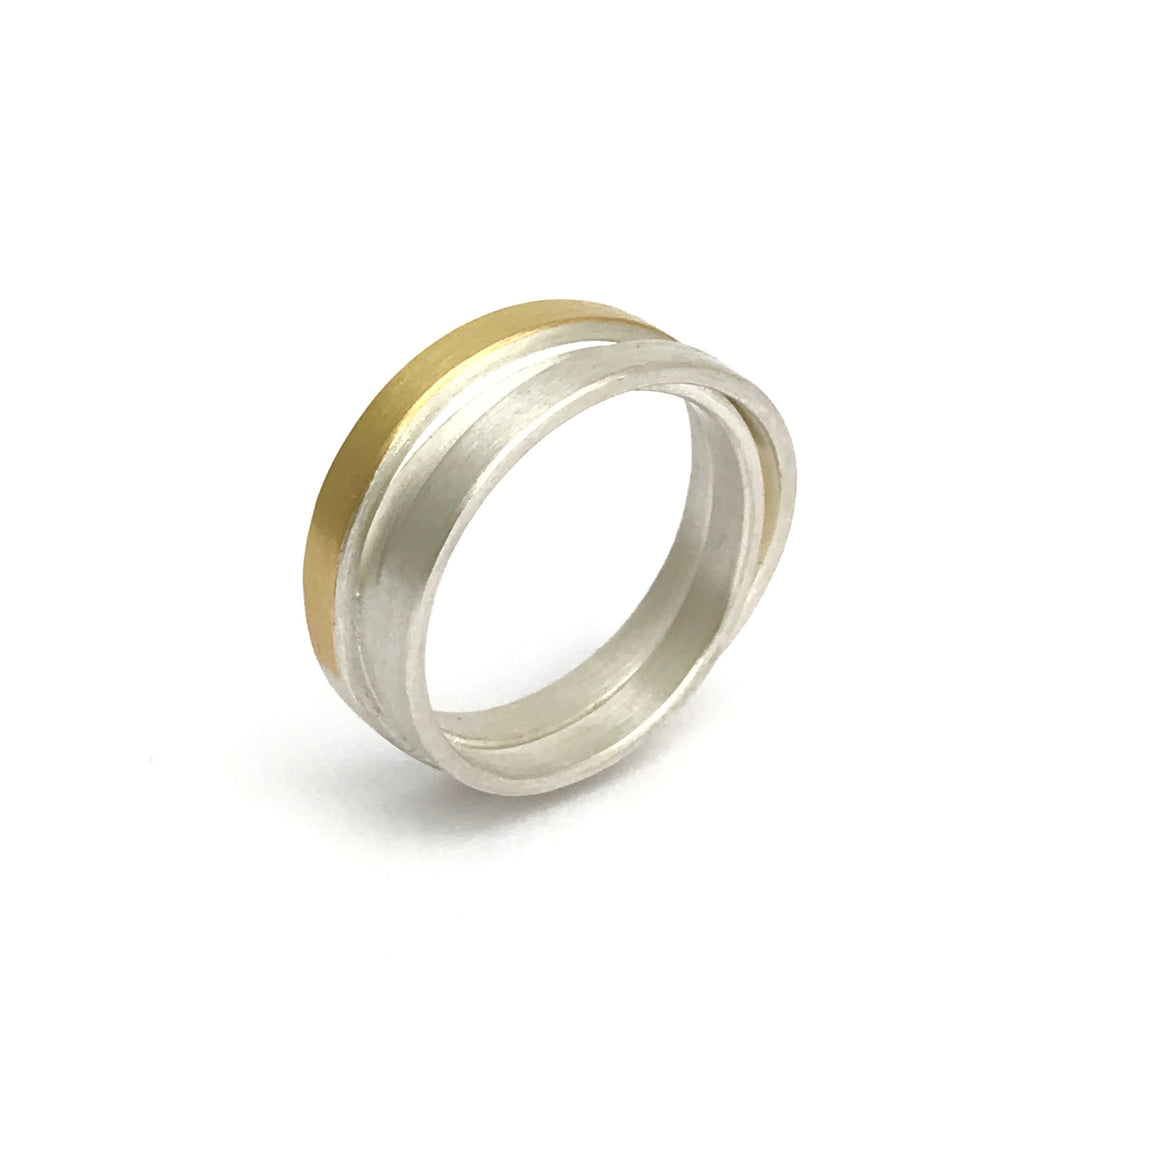 Wrap-around ring - R47